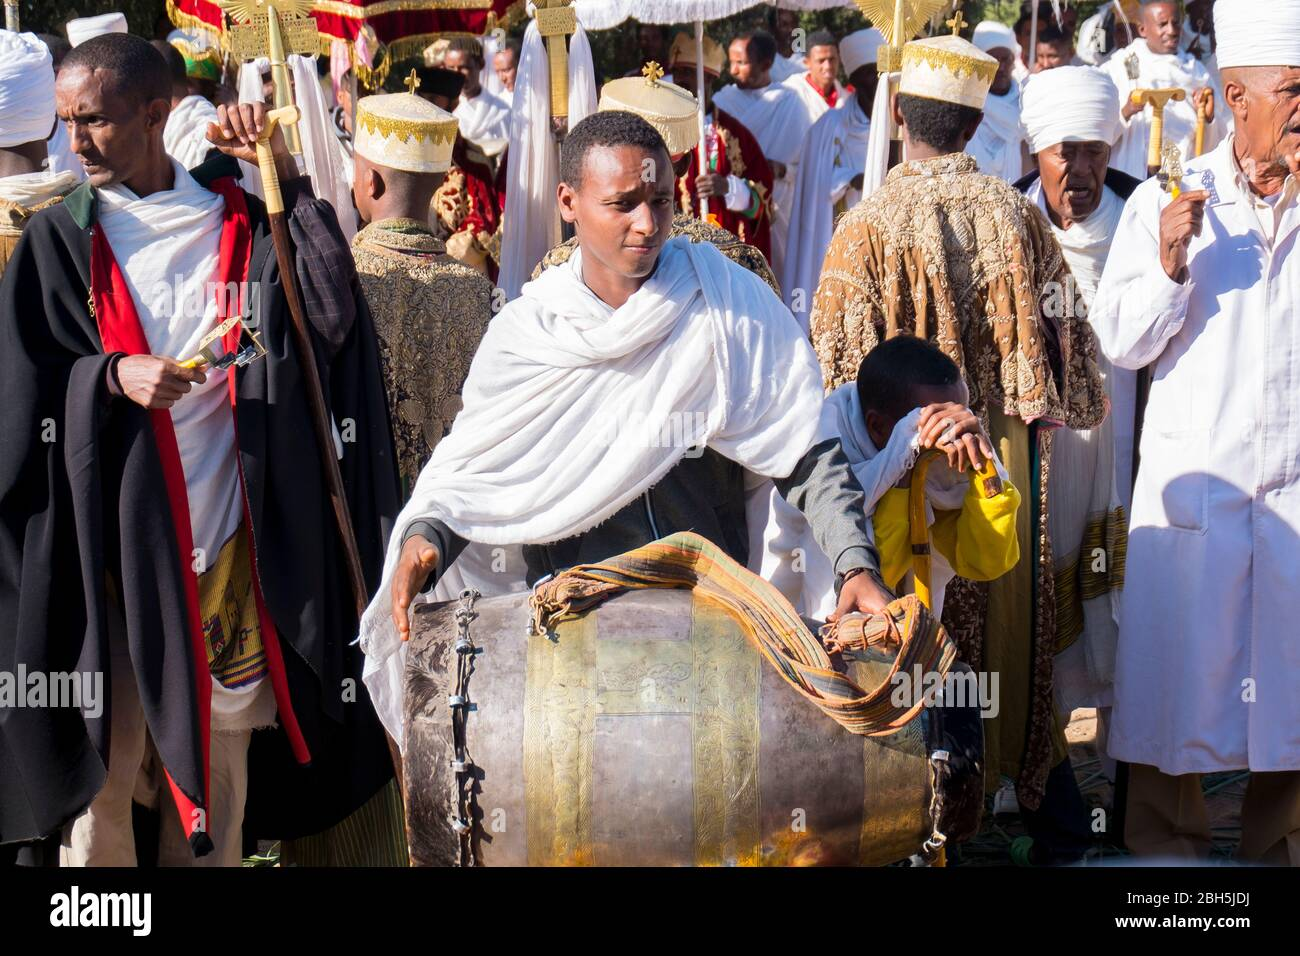 A young man is busy drumming dring a Timkat ceremony in Axum. In Ethiopia, Africa. Stock Photo